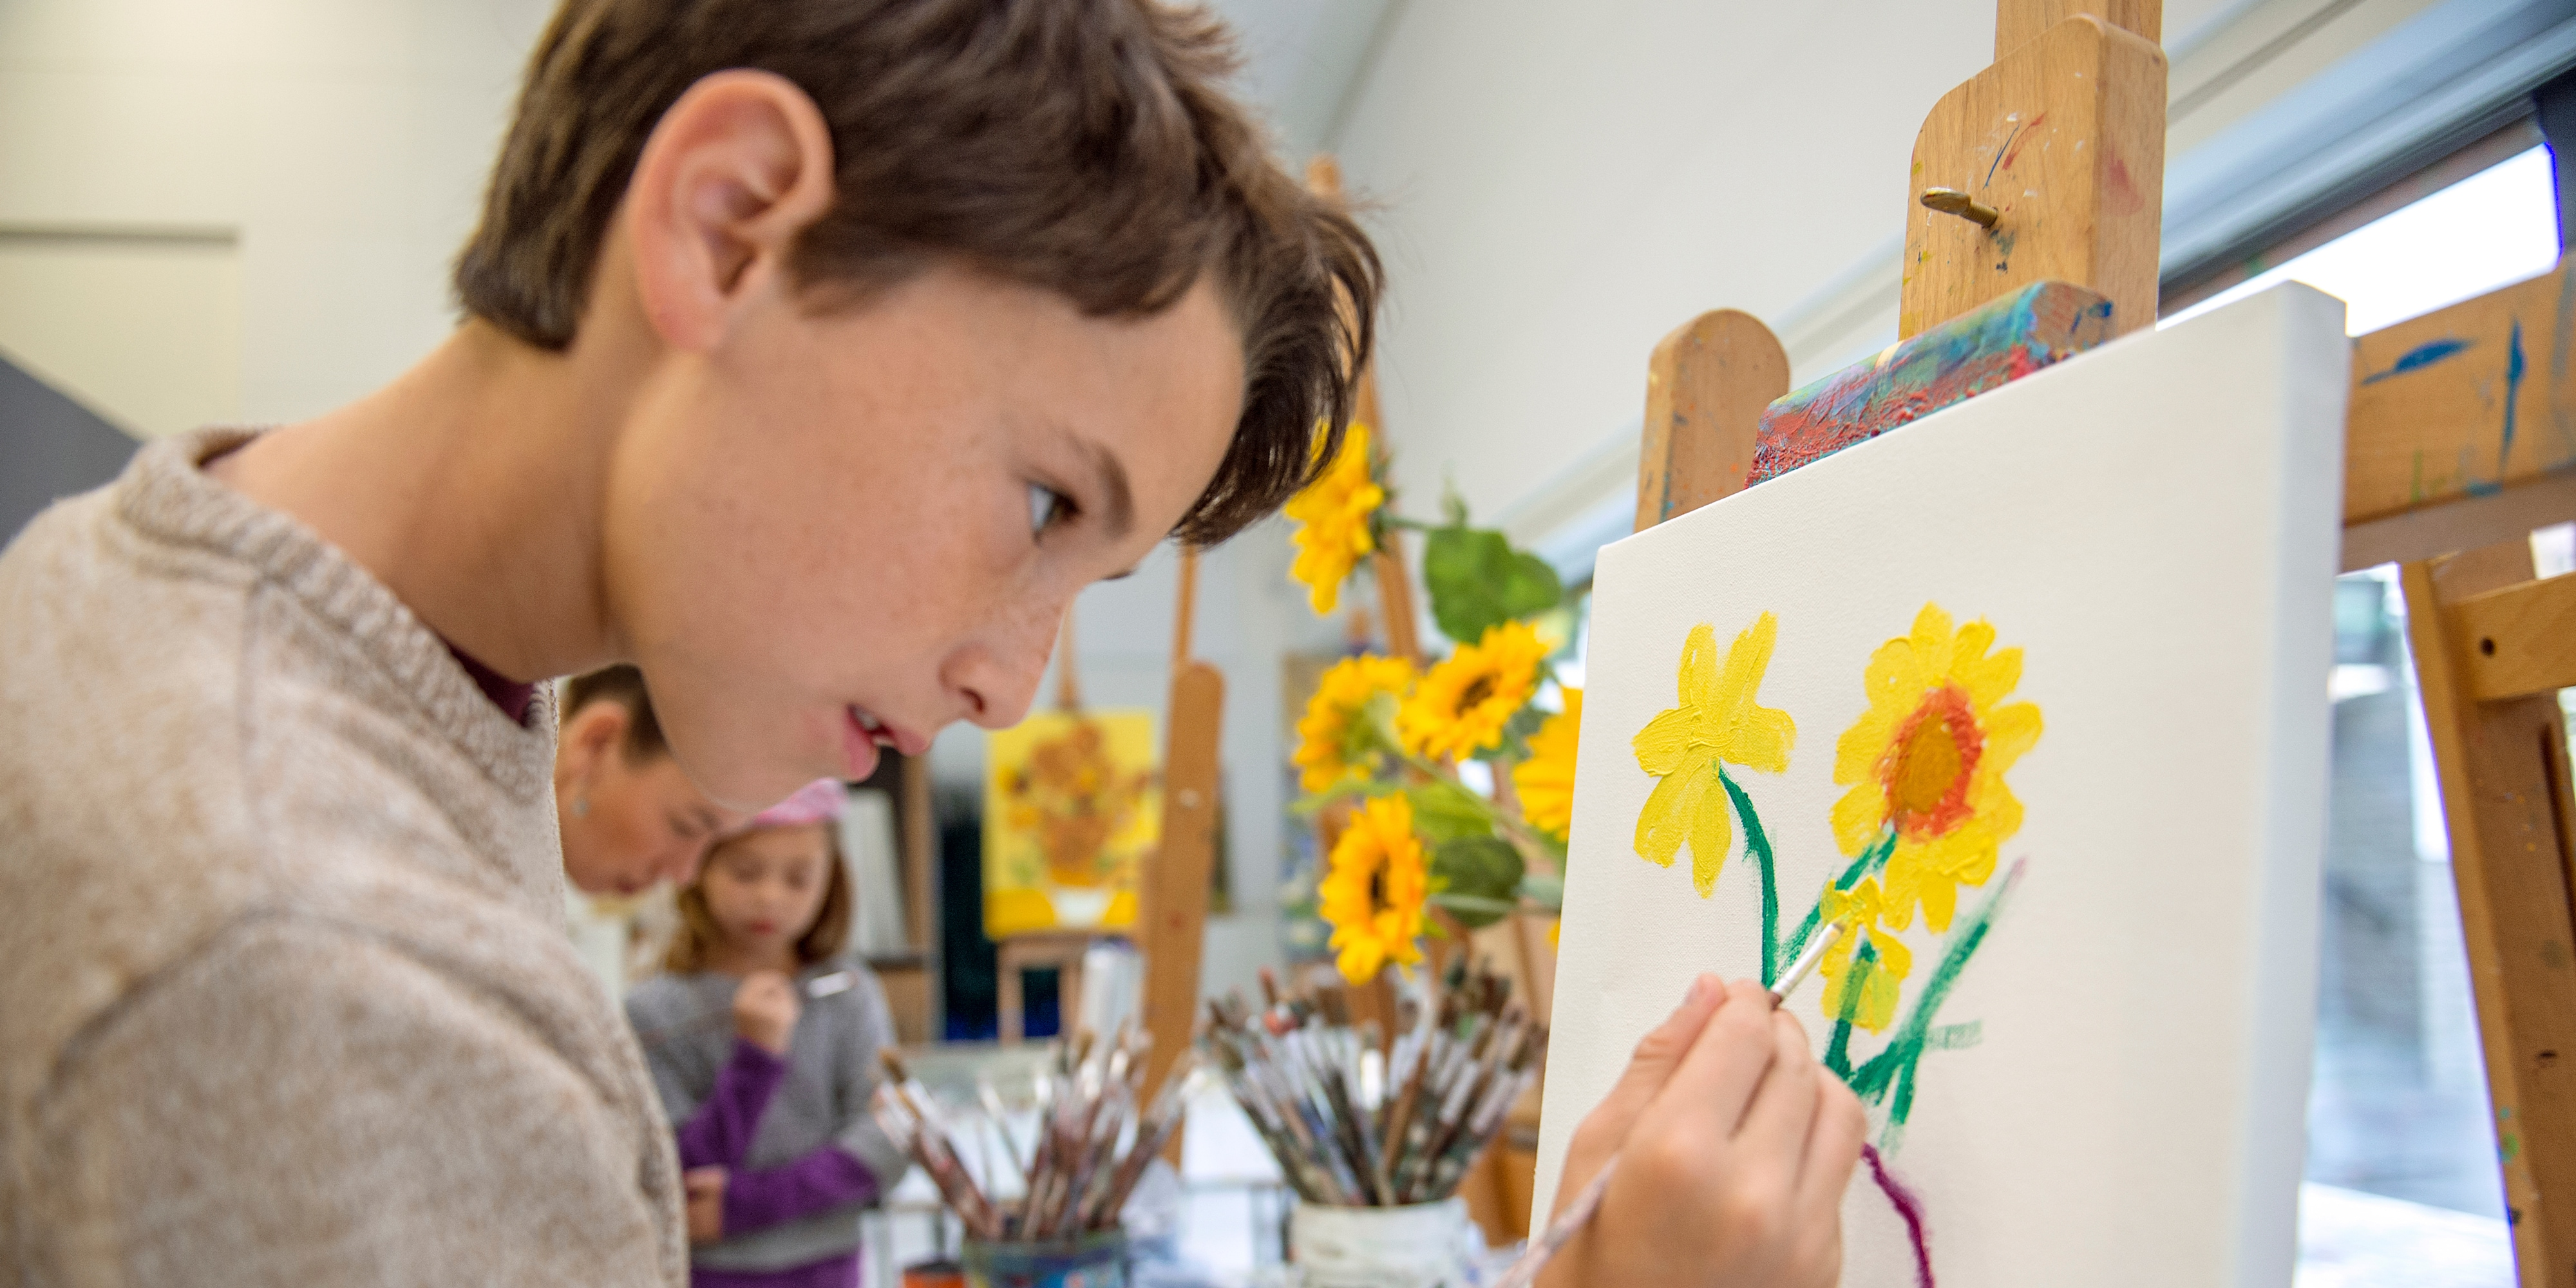 A boy stands at an easel creating a painting of sunflowers, copying the sunflowers in a nearby vase